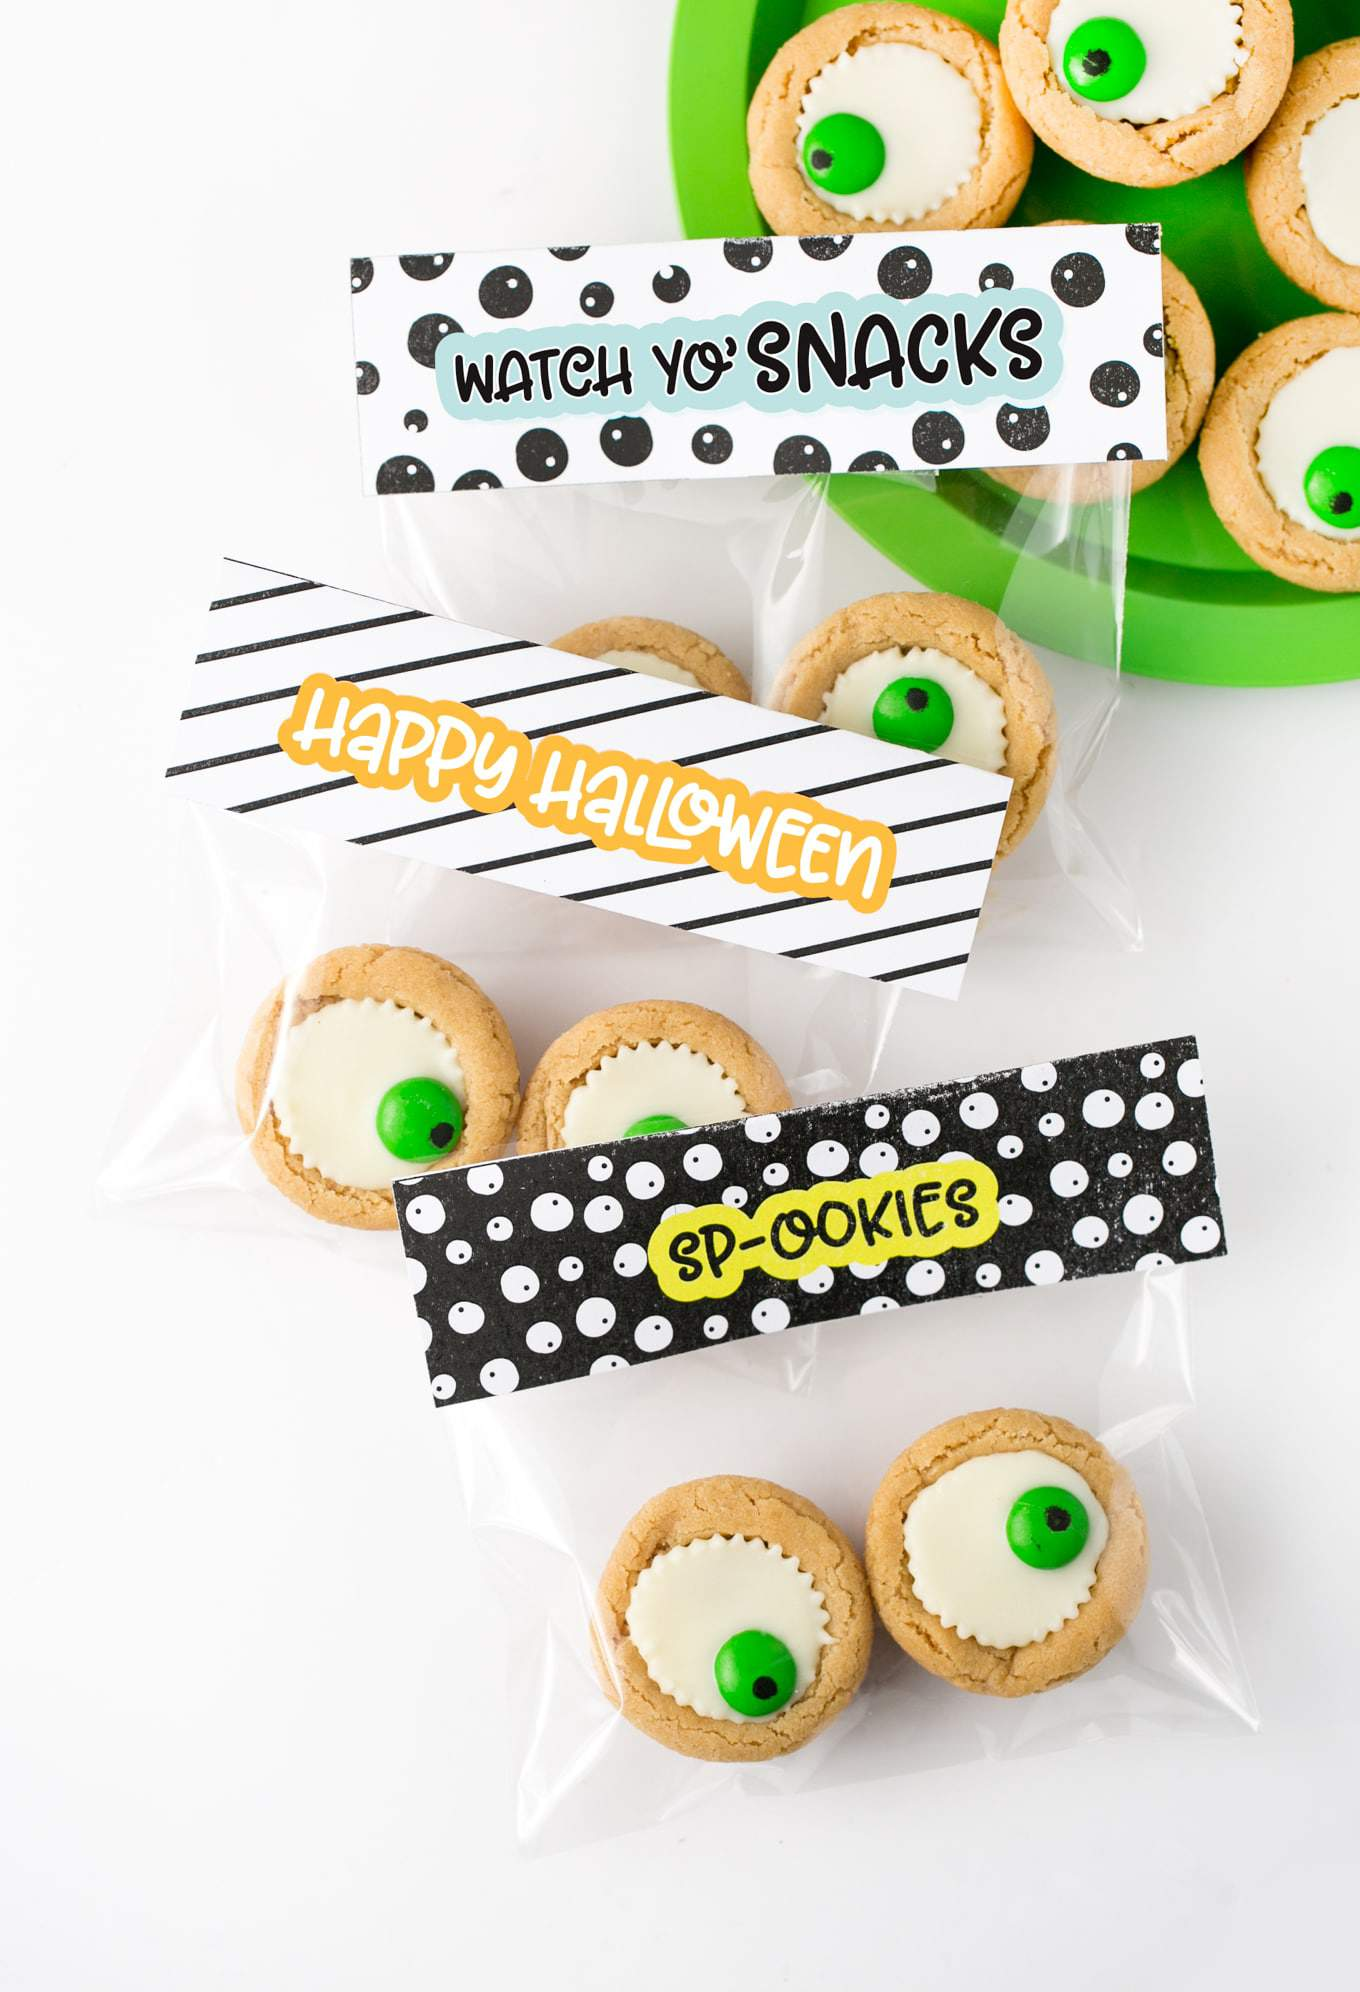 photograph relating to Free Printable Treat Bag Toppers named Halloween Handle Bag Toppers Cost-free Printable - Layout Consume Repeat